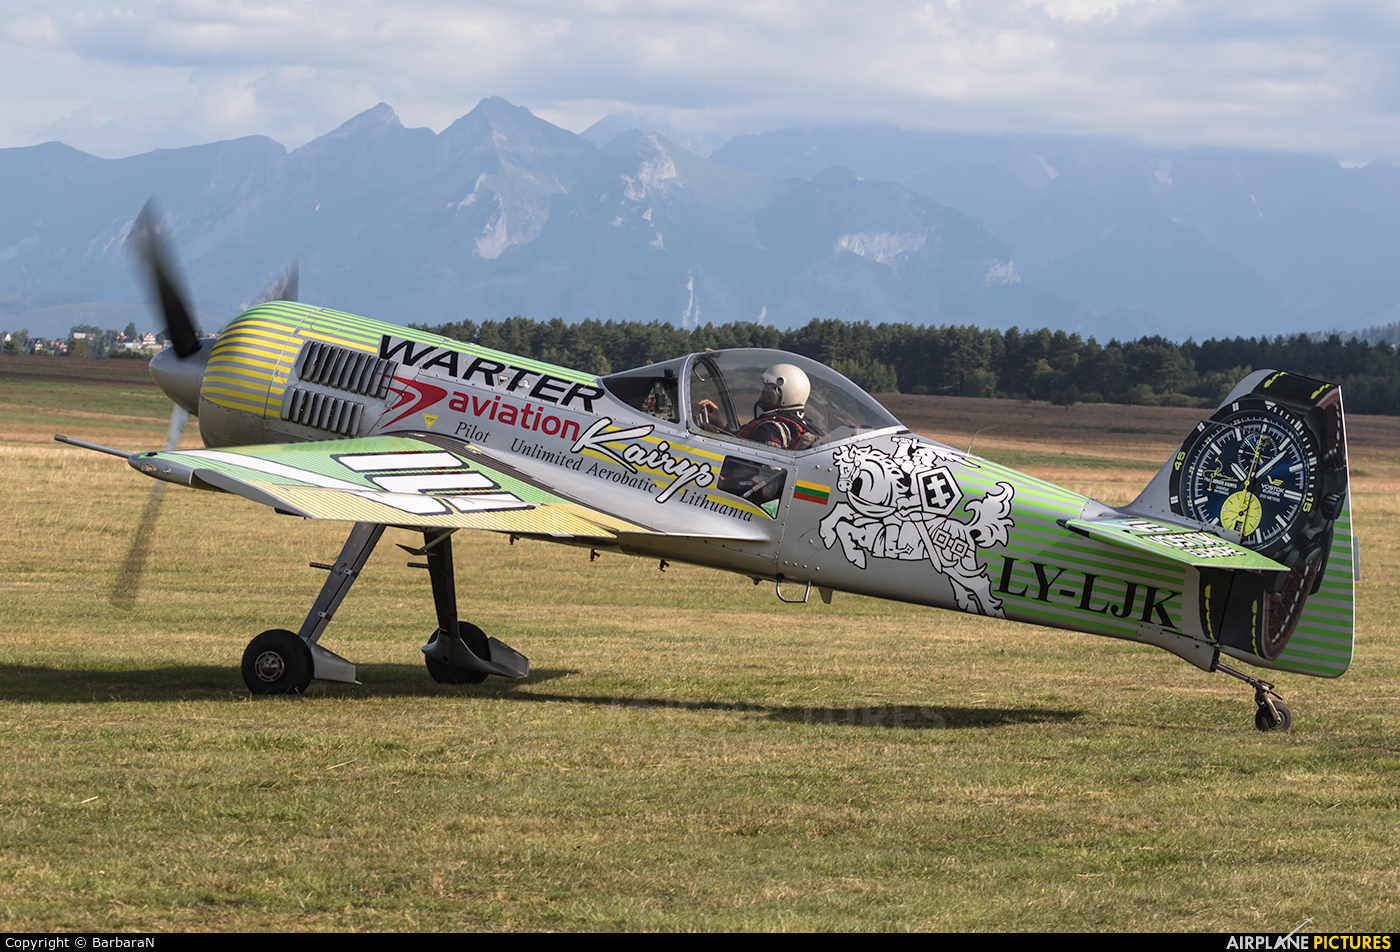 Private LY-LJK aircraft at Nowy Targ